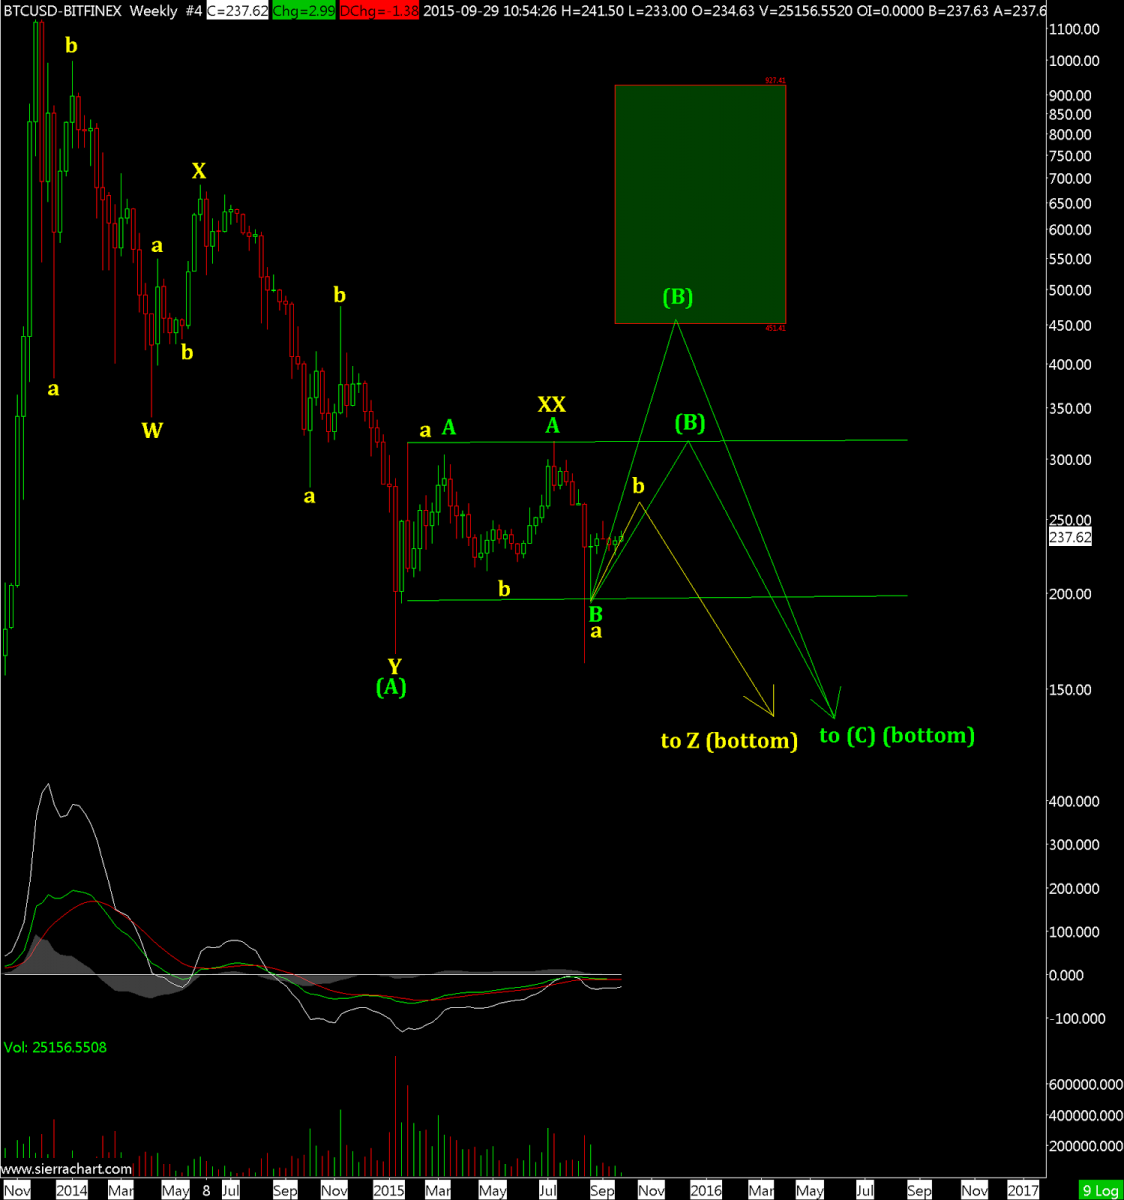 BTCUSD-BITFINEX  Weekly  #4 2015-09-29  10_55_15.147.png